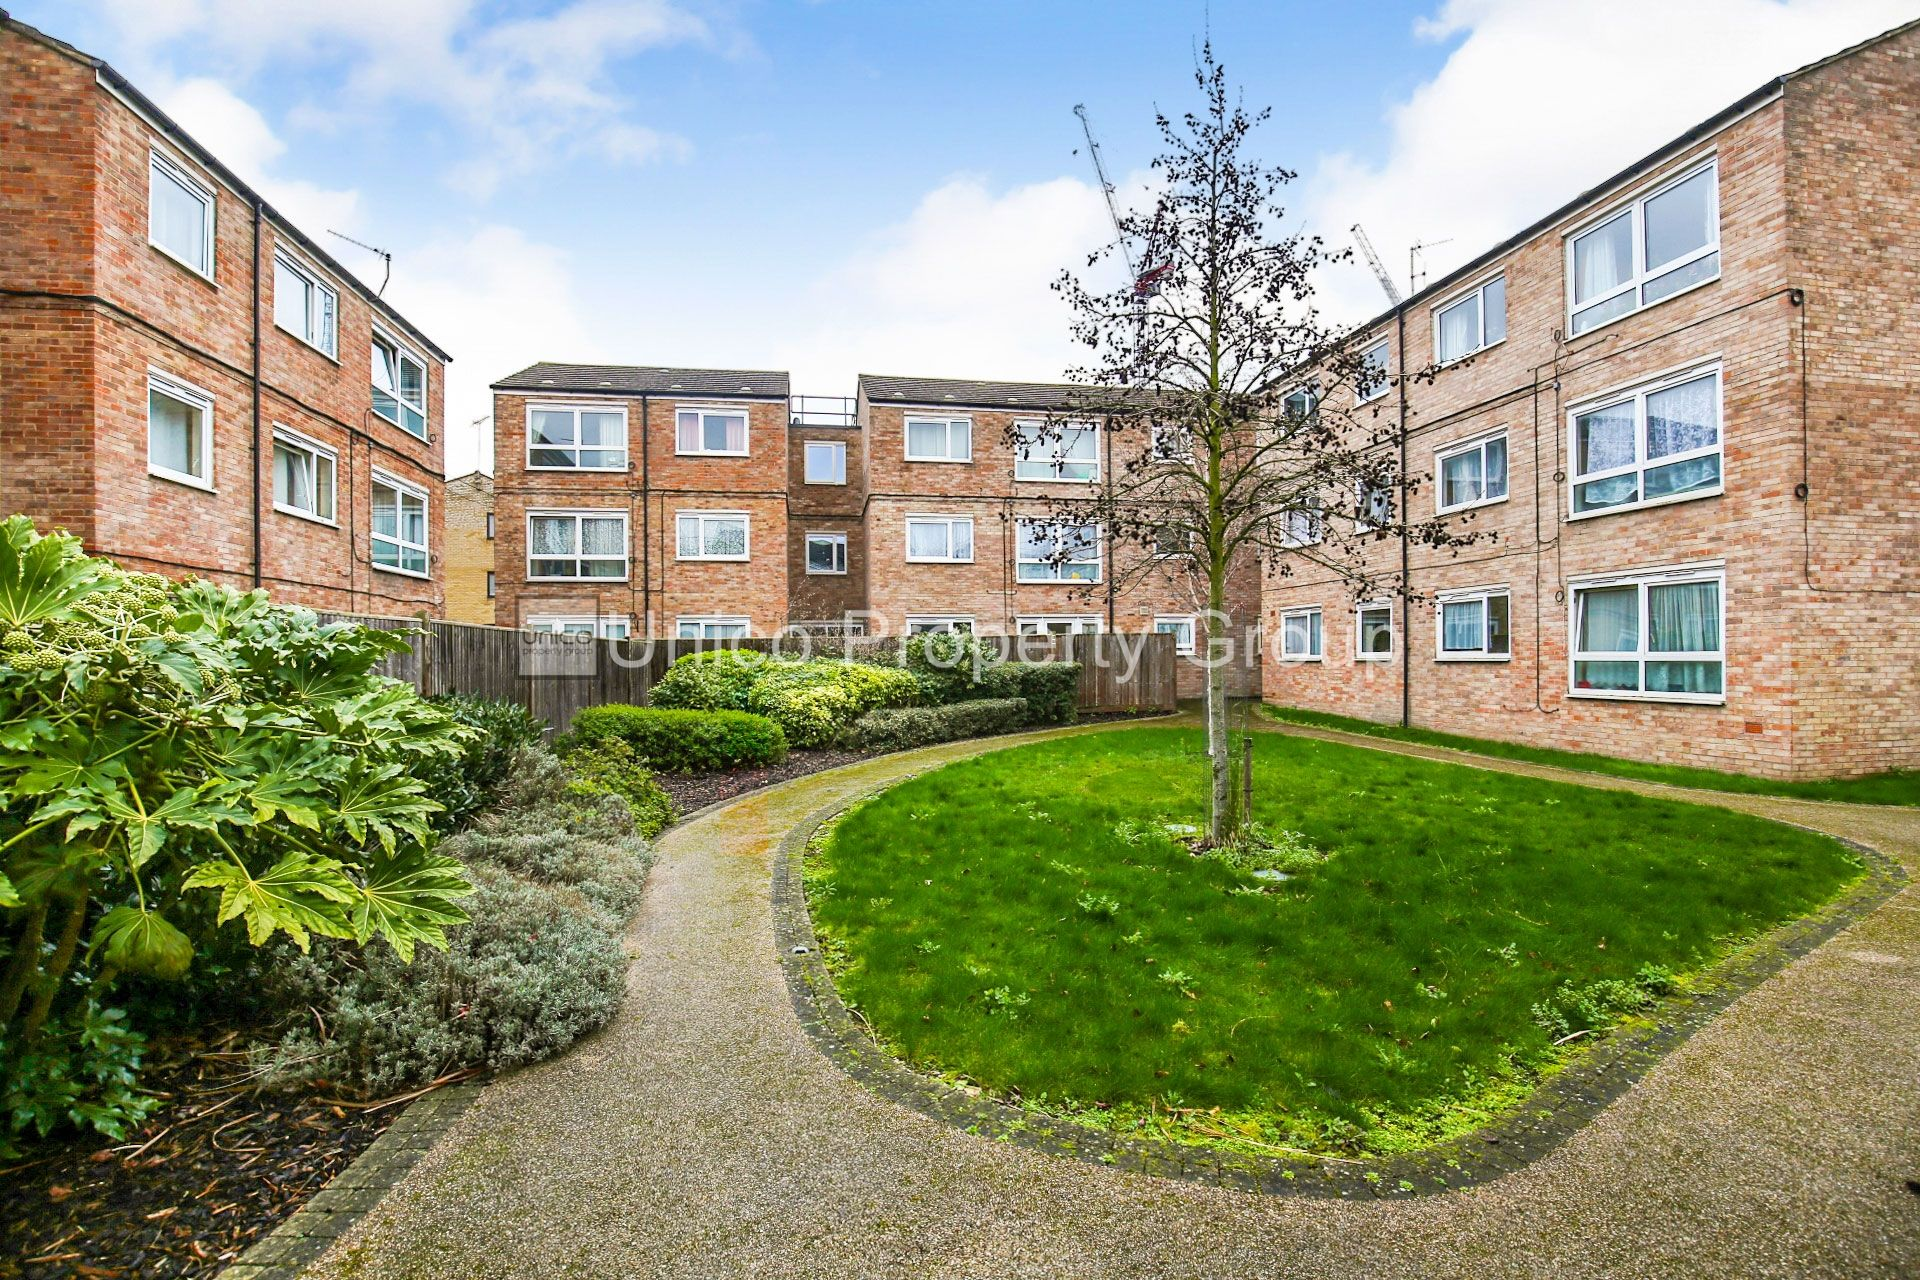 Patrick Connolly Gardens  Bromley by Bow  London  E3